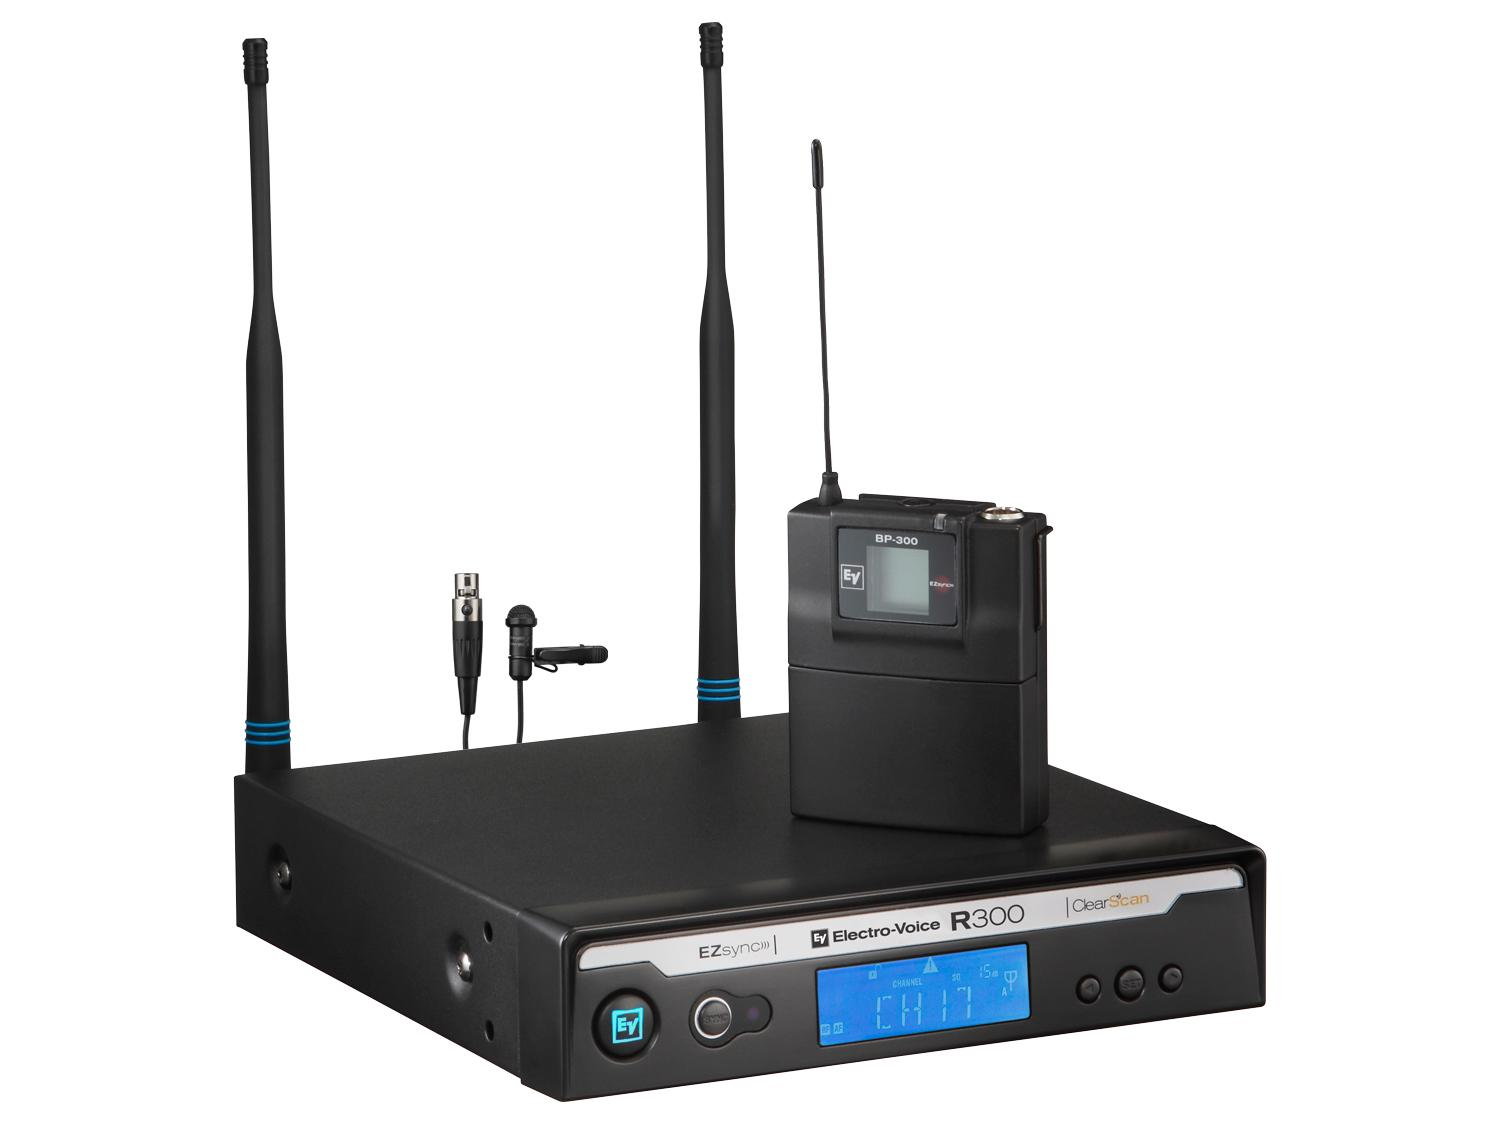 Electro-Voice R300LC R300 Series Wireless Uni-Directional ULM18 Lapel Microphone System C-Band/516-532 MHz